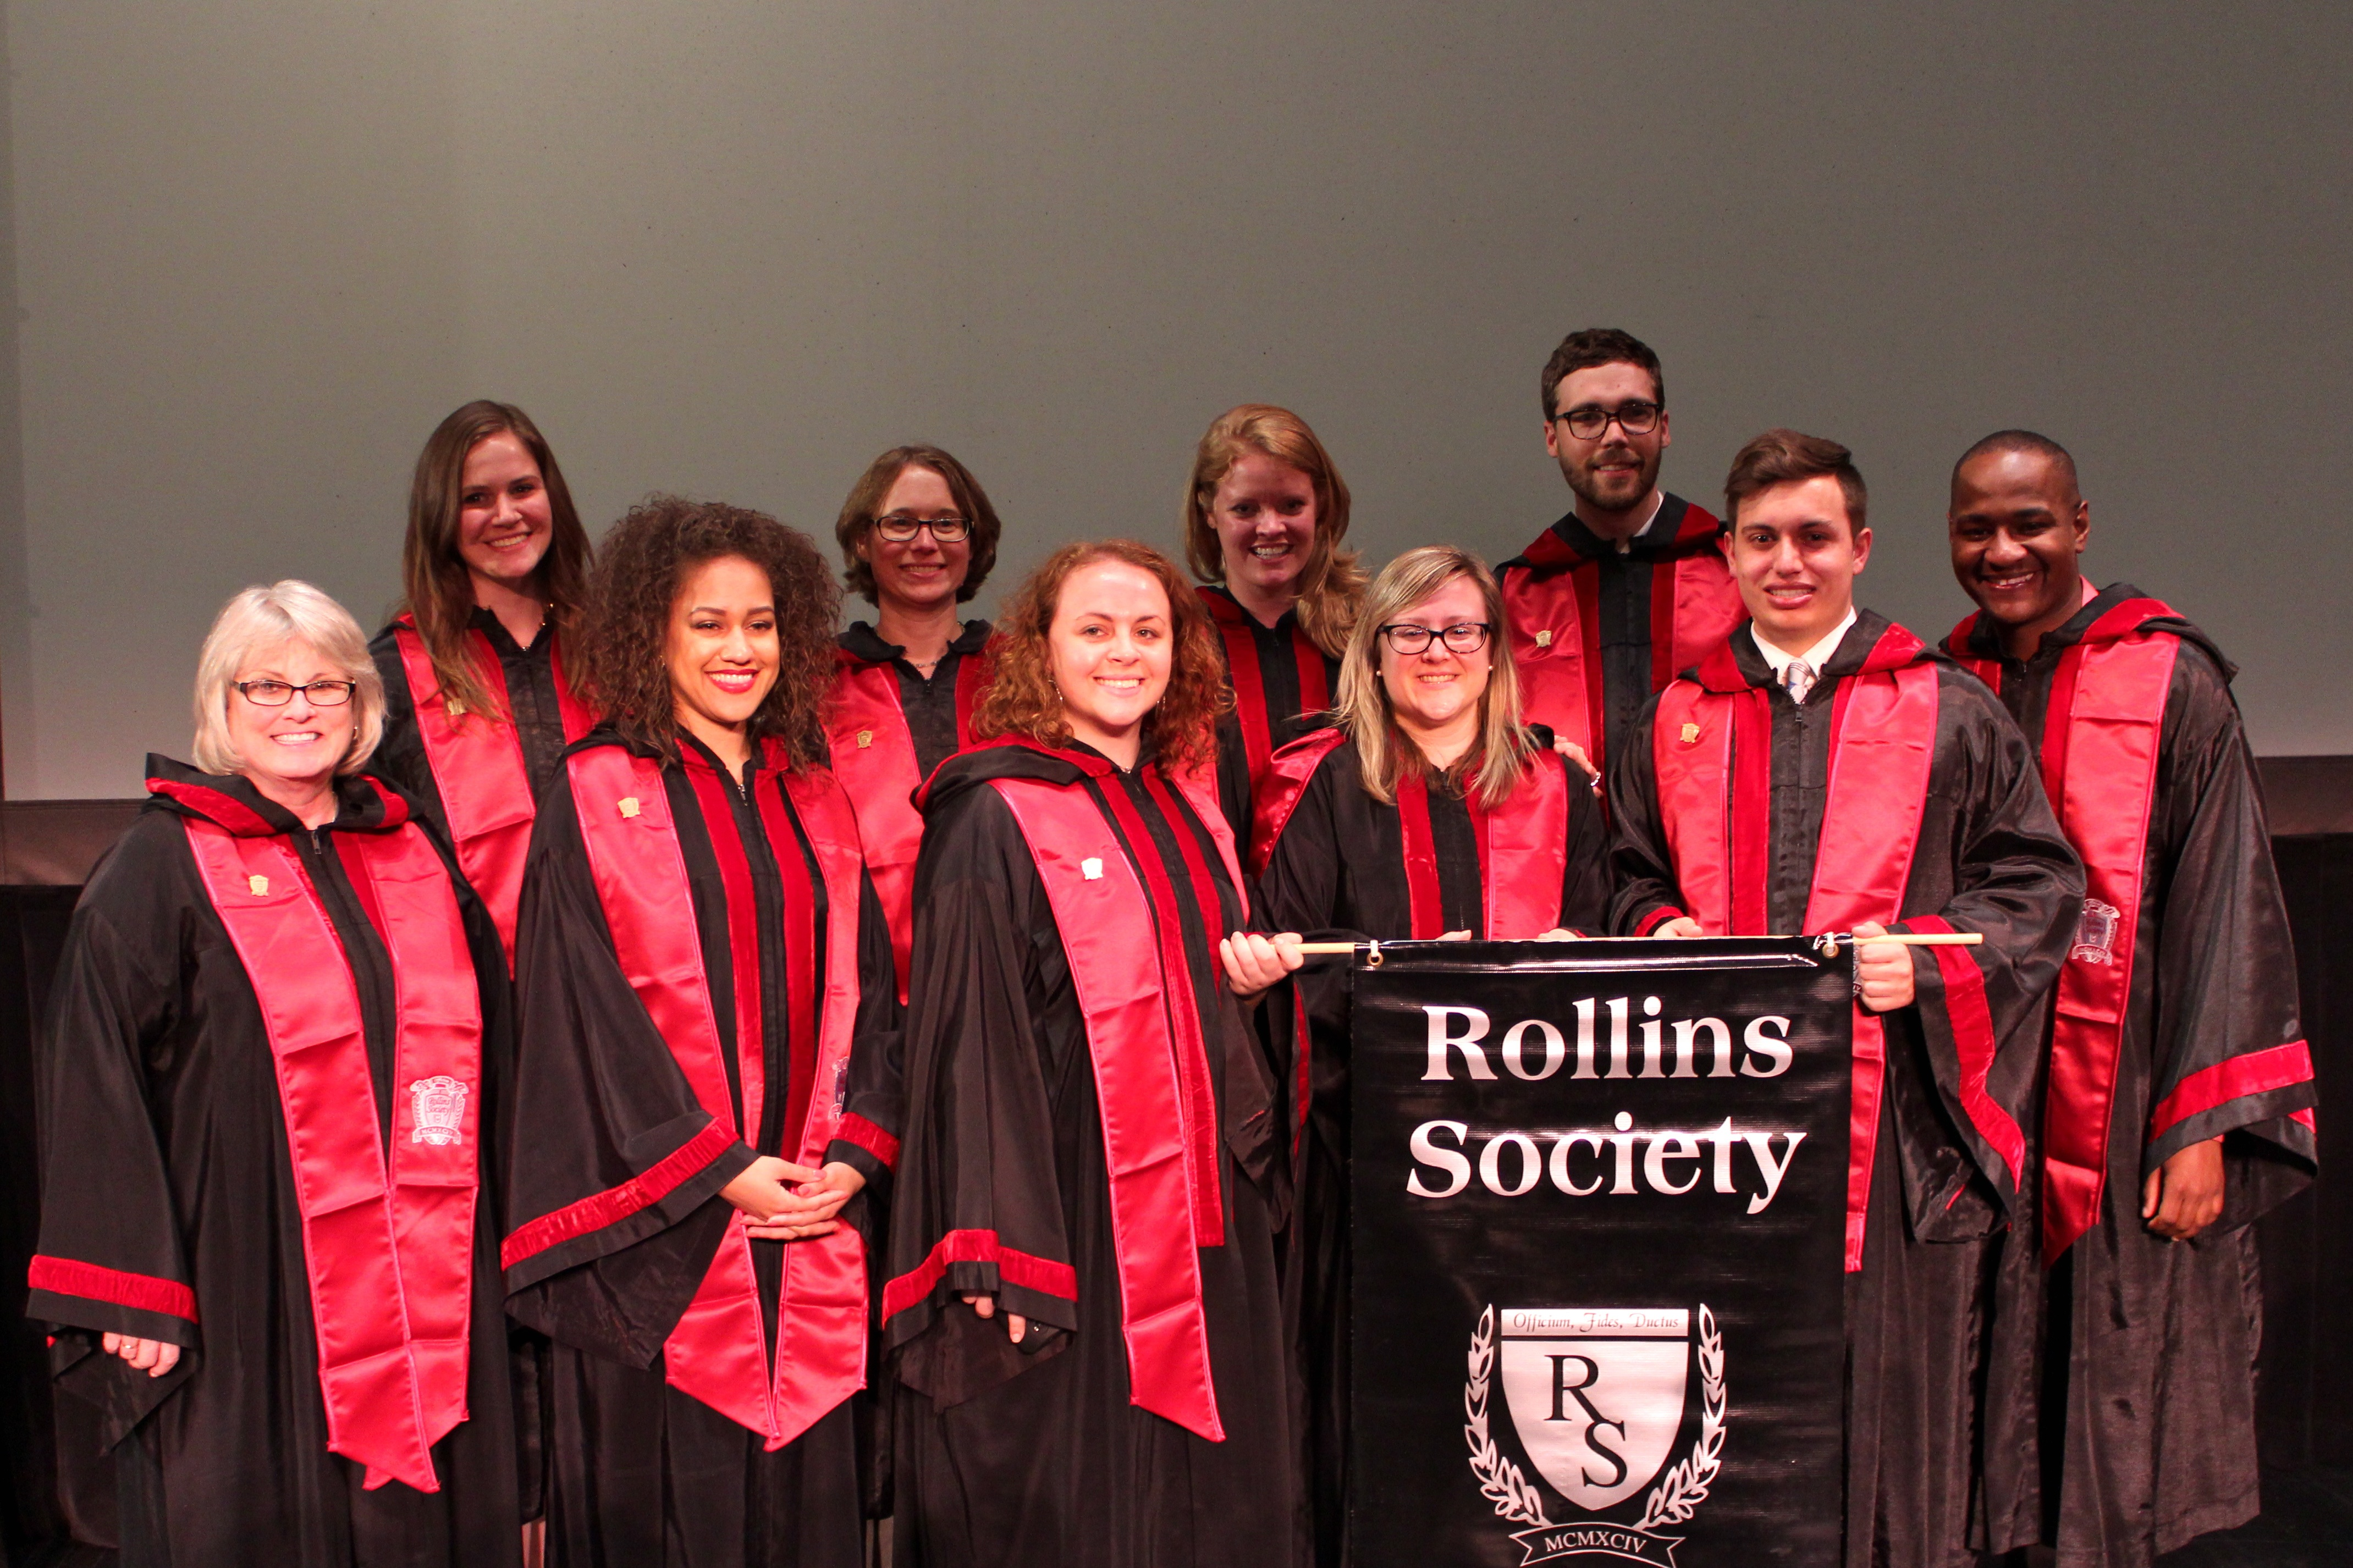 Rollins Society Class of 2015 picture